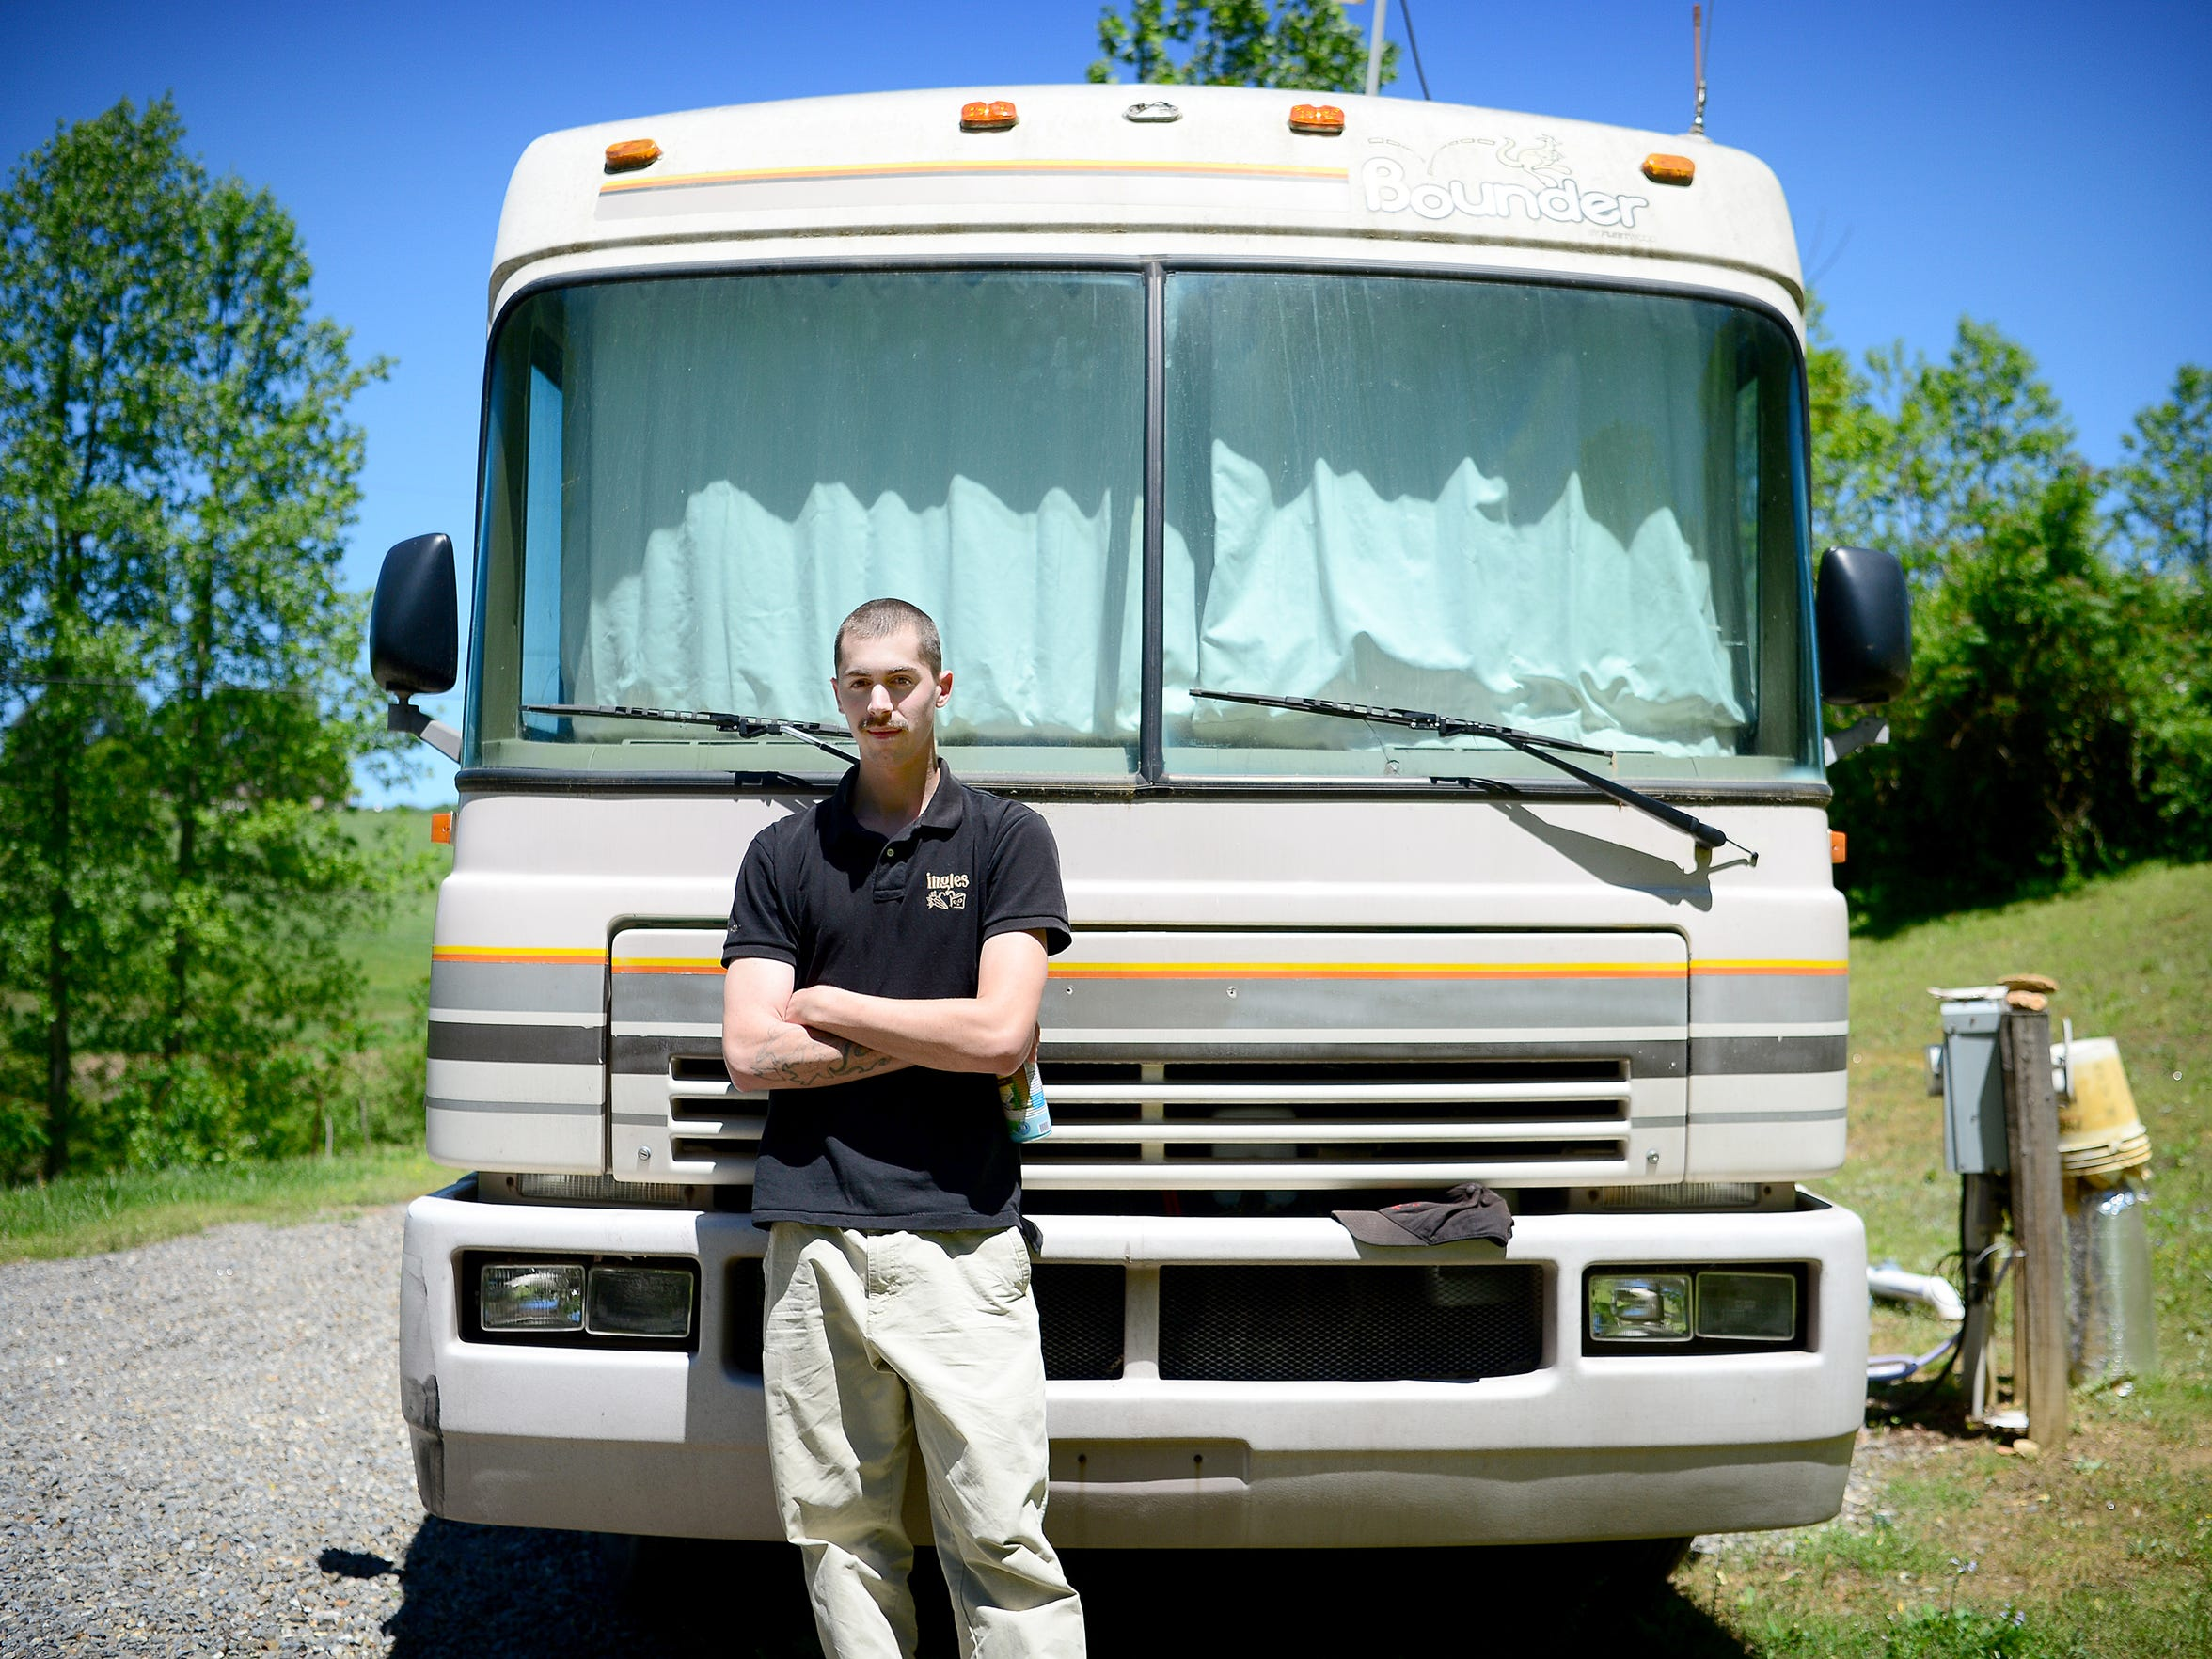 Zacre Poirier, 24, stands in front of the RV he purchased